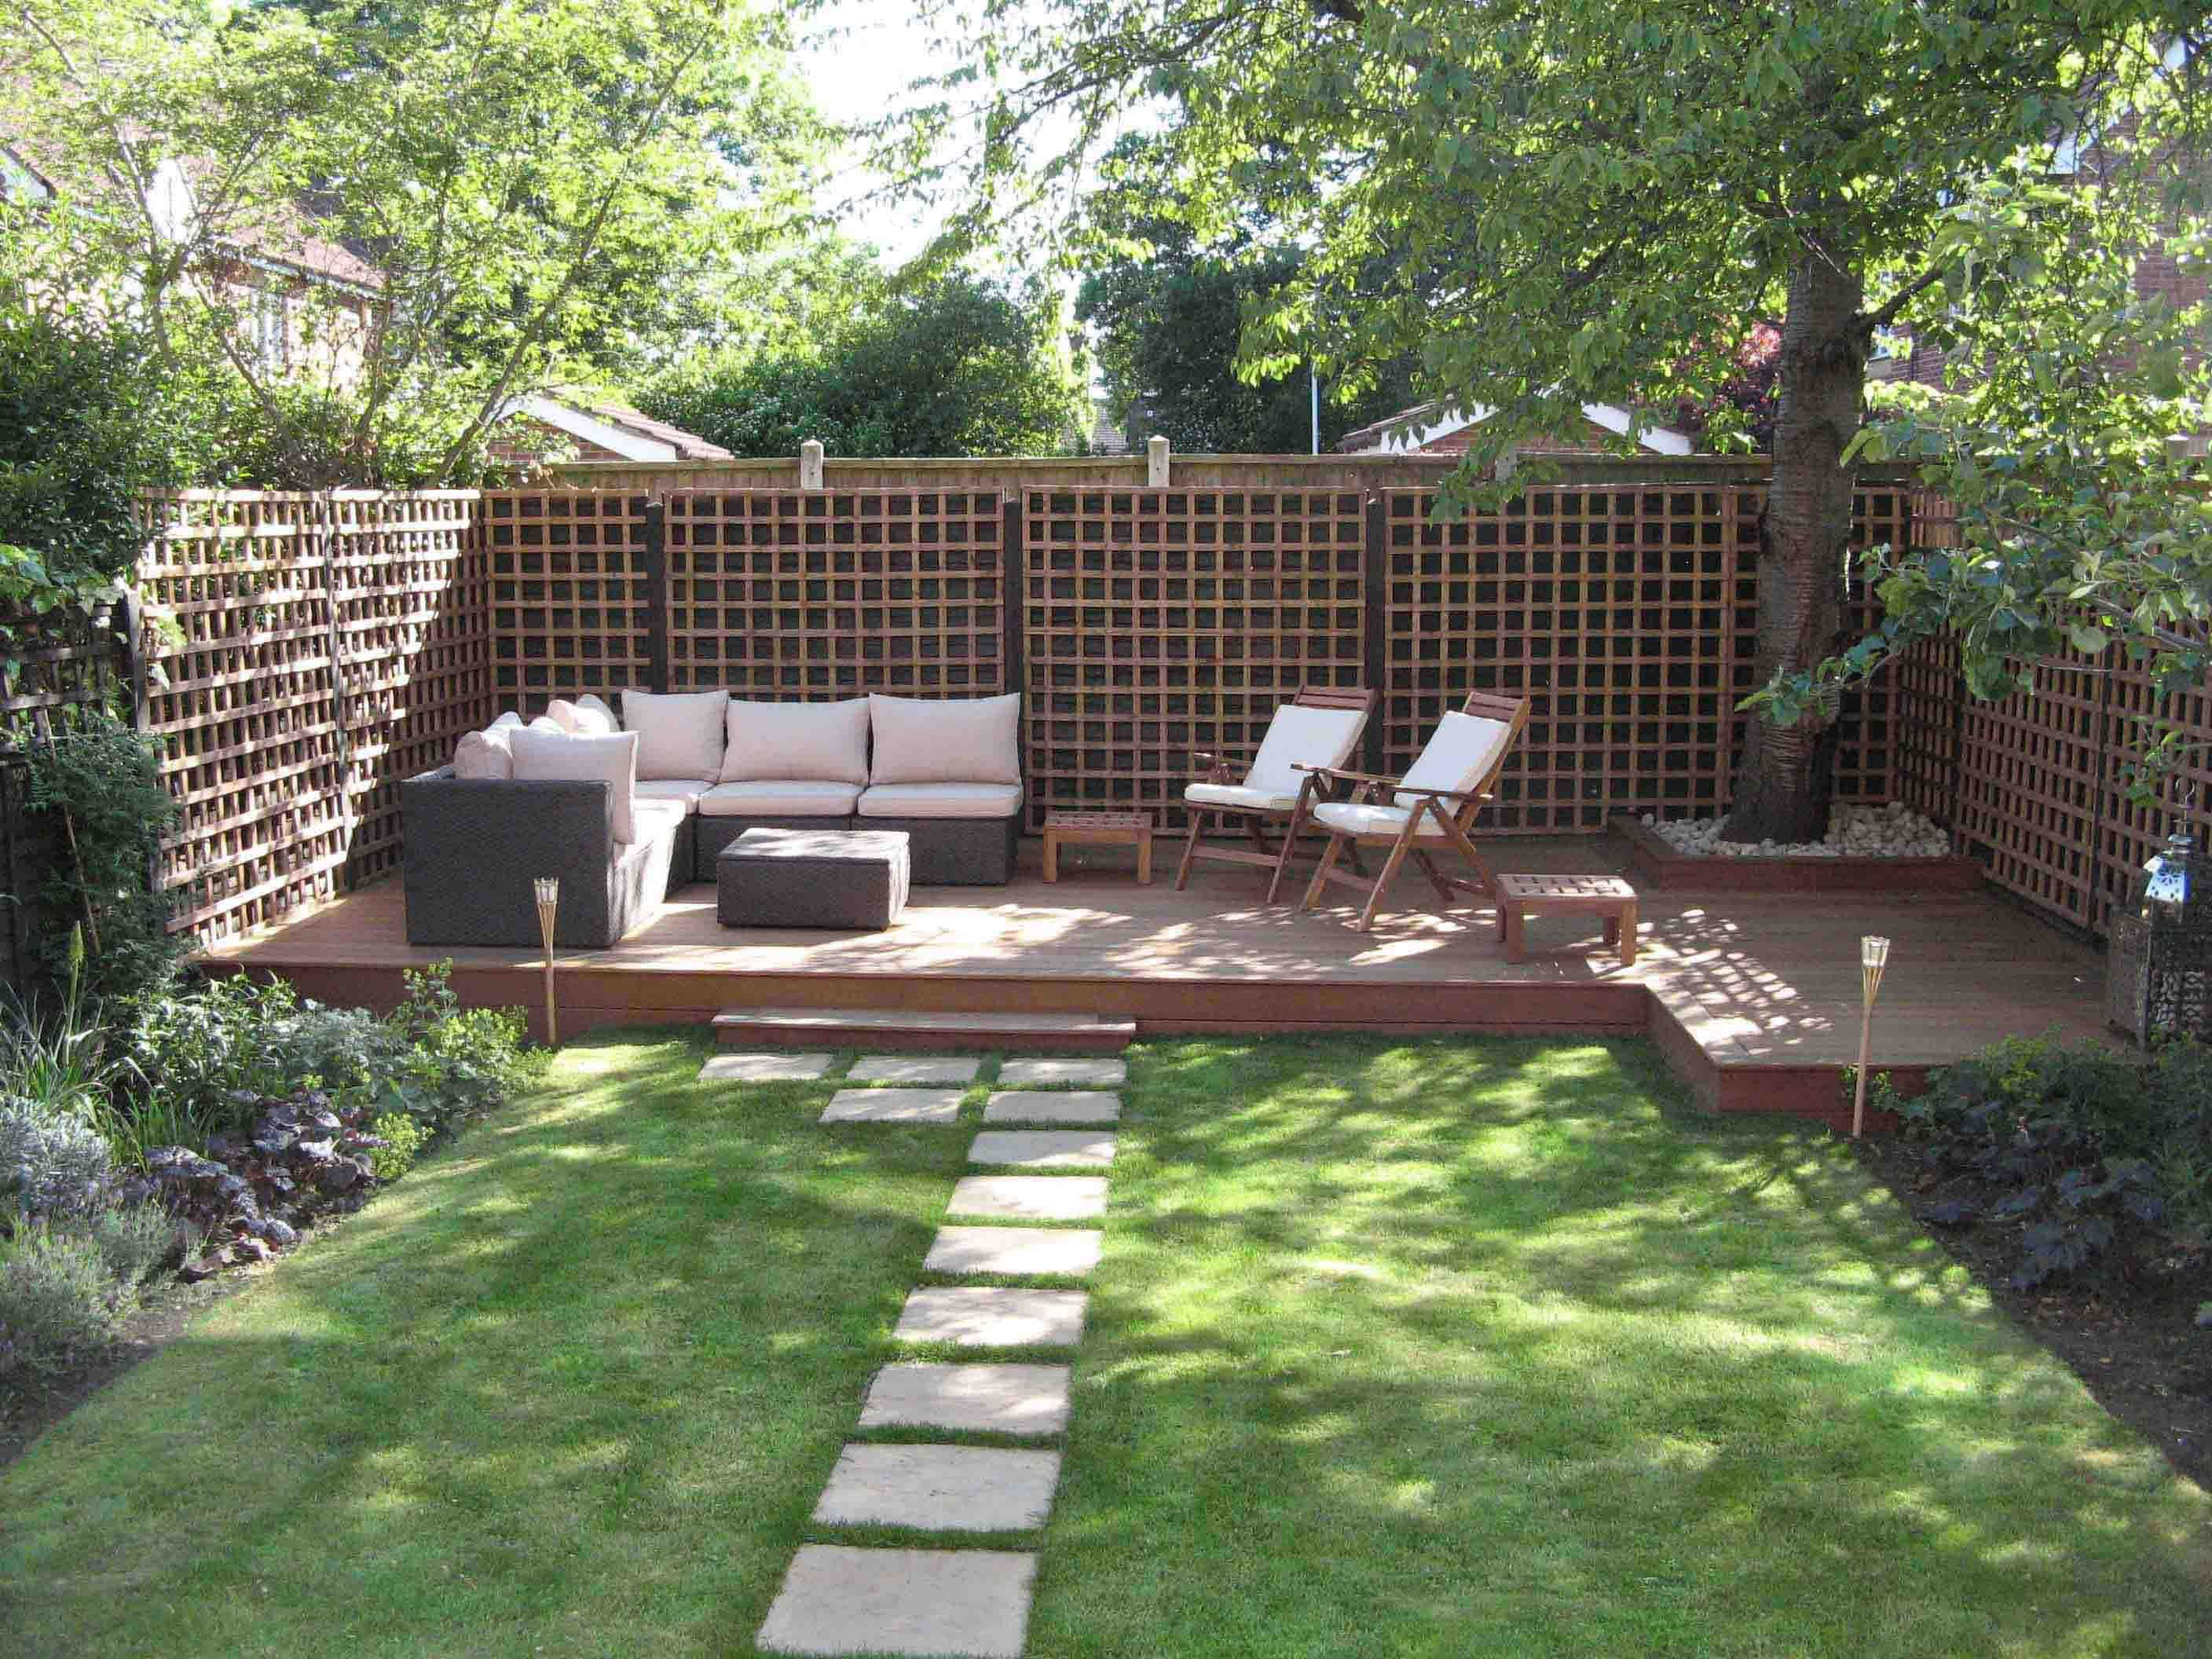 Low Deck Great Way To Add Interest A Small Back Yard Dedicated Seating Area